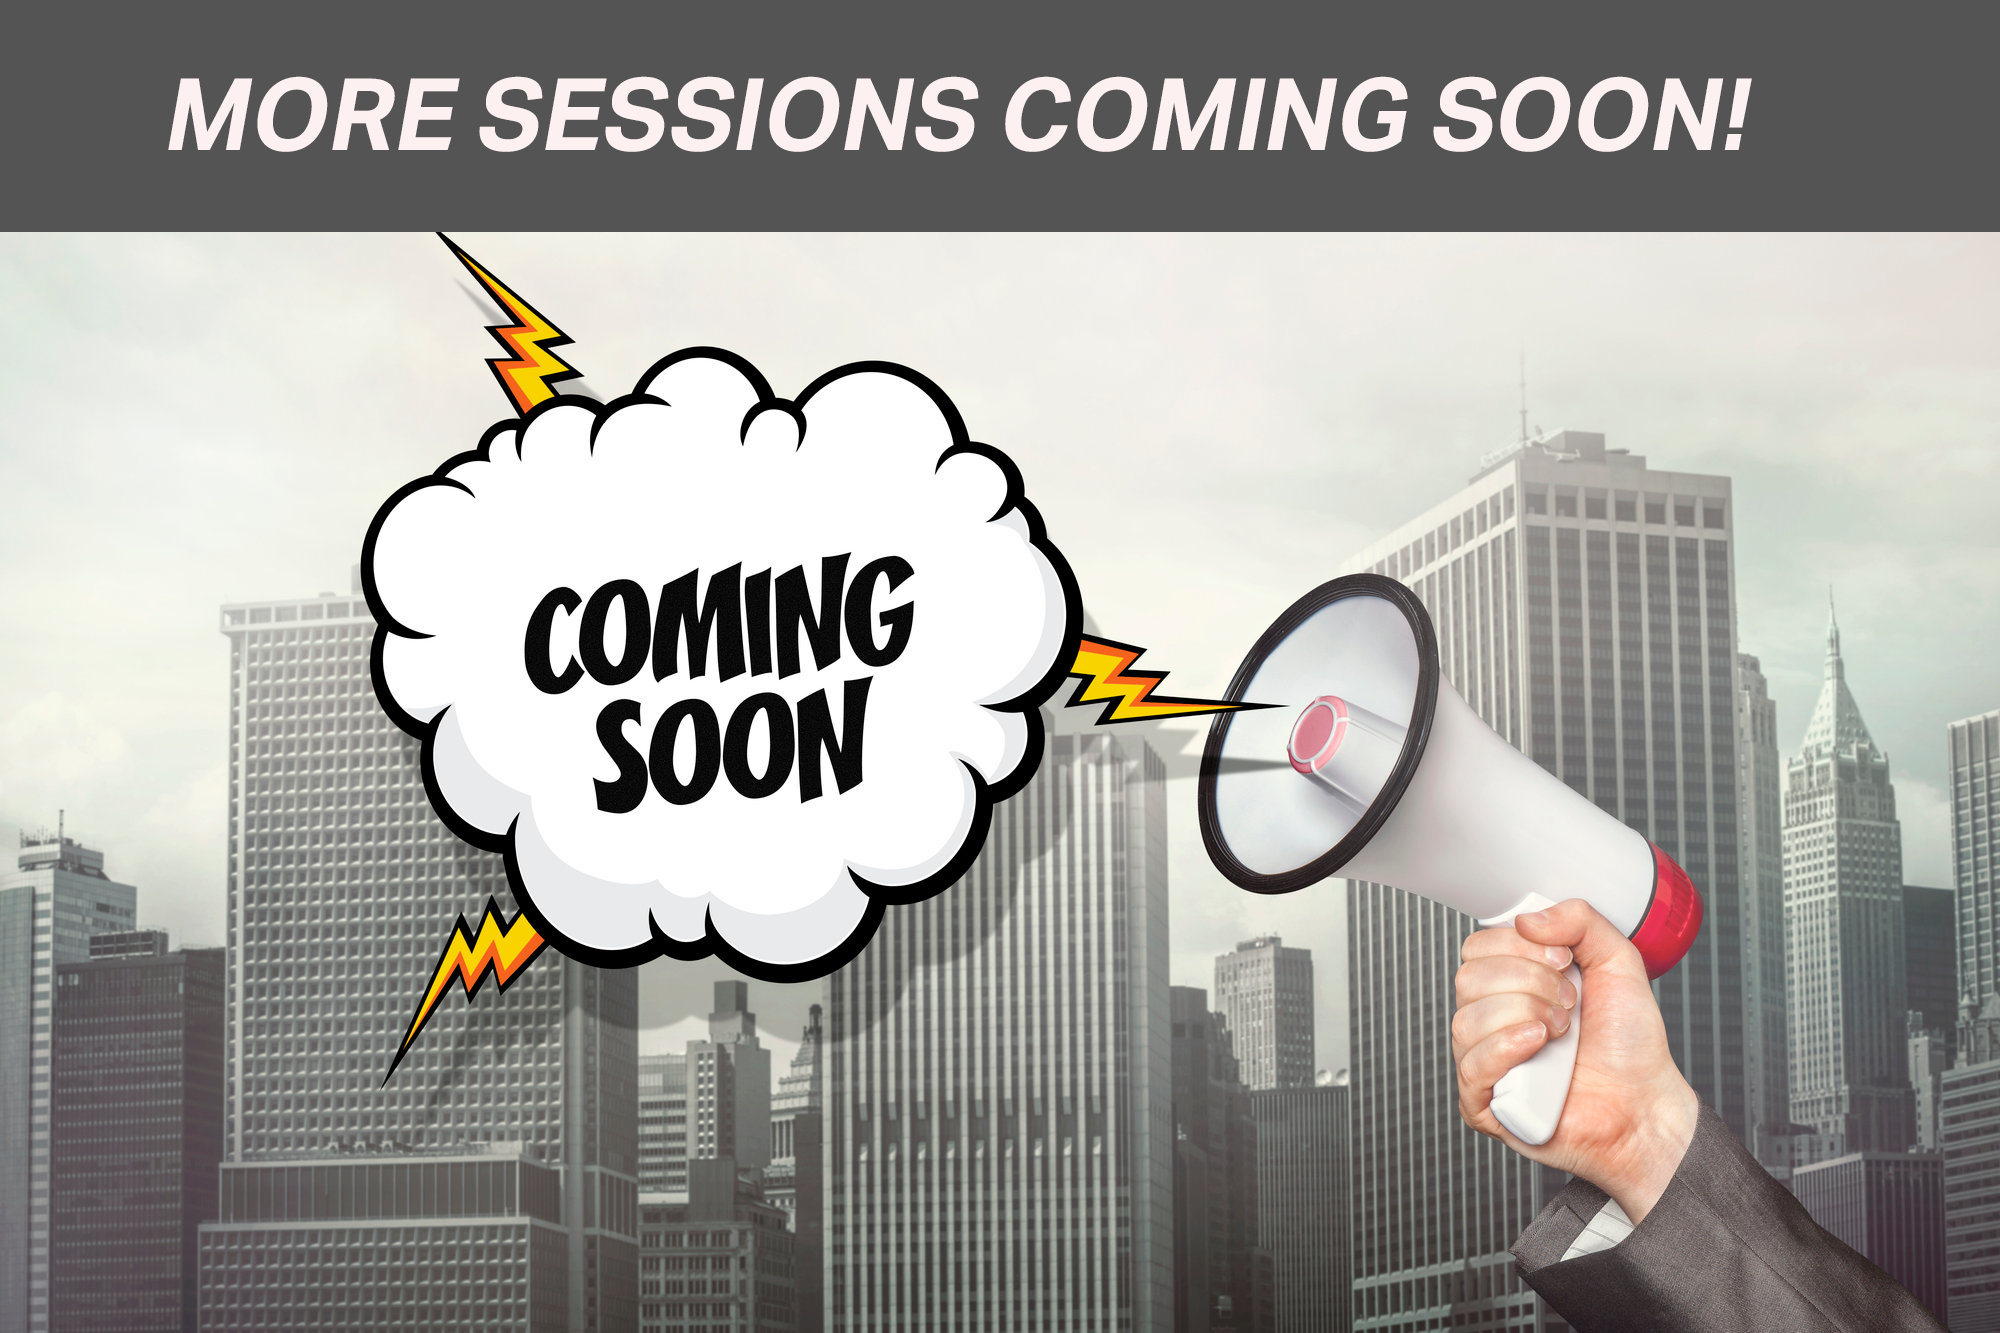 more sessions